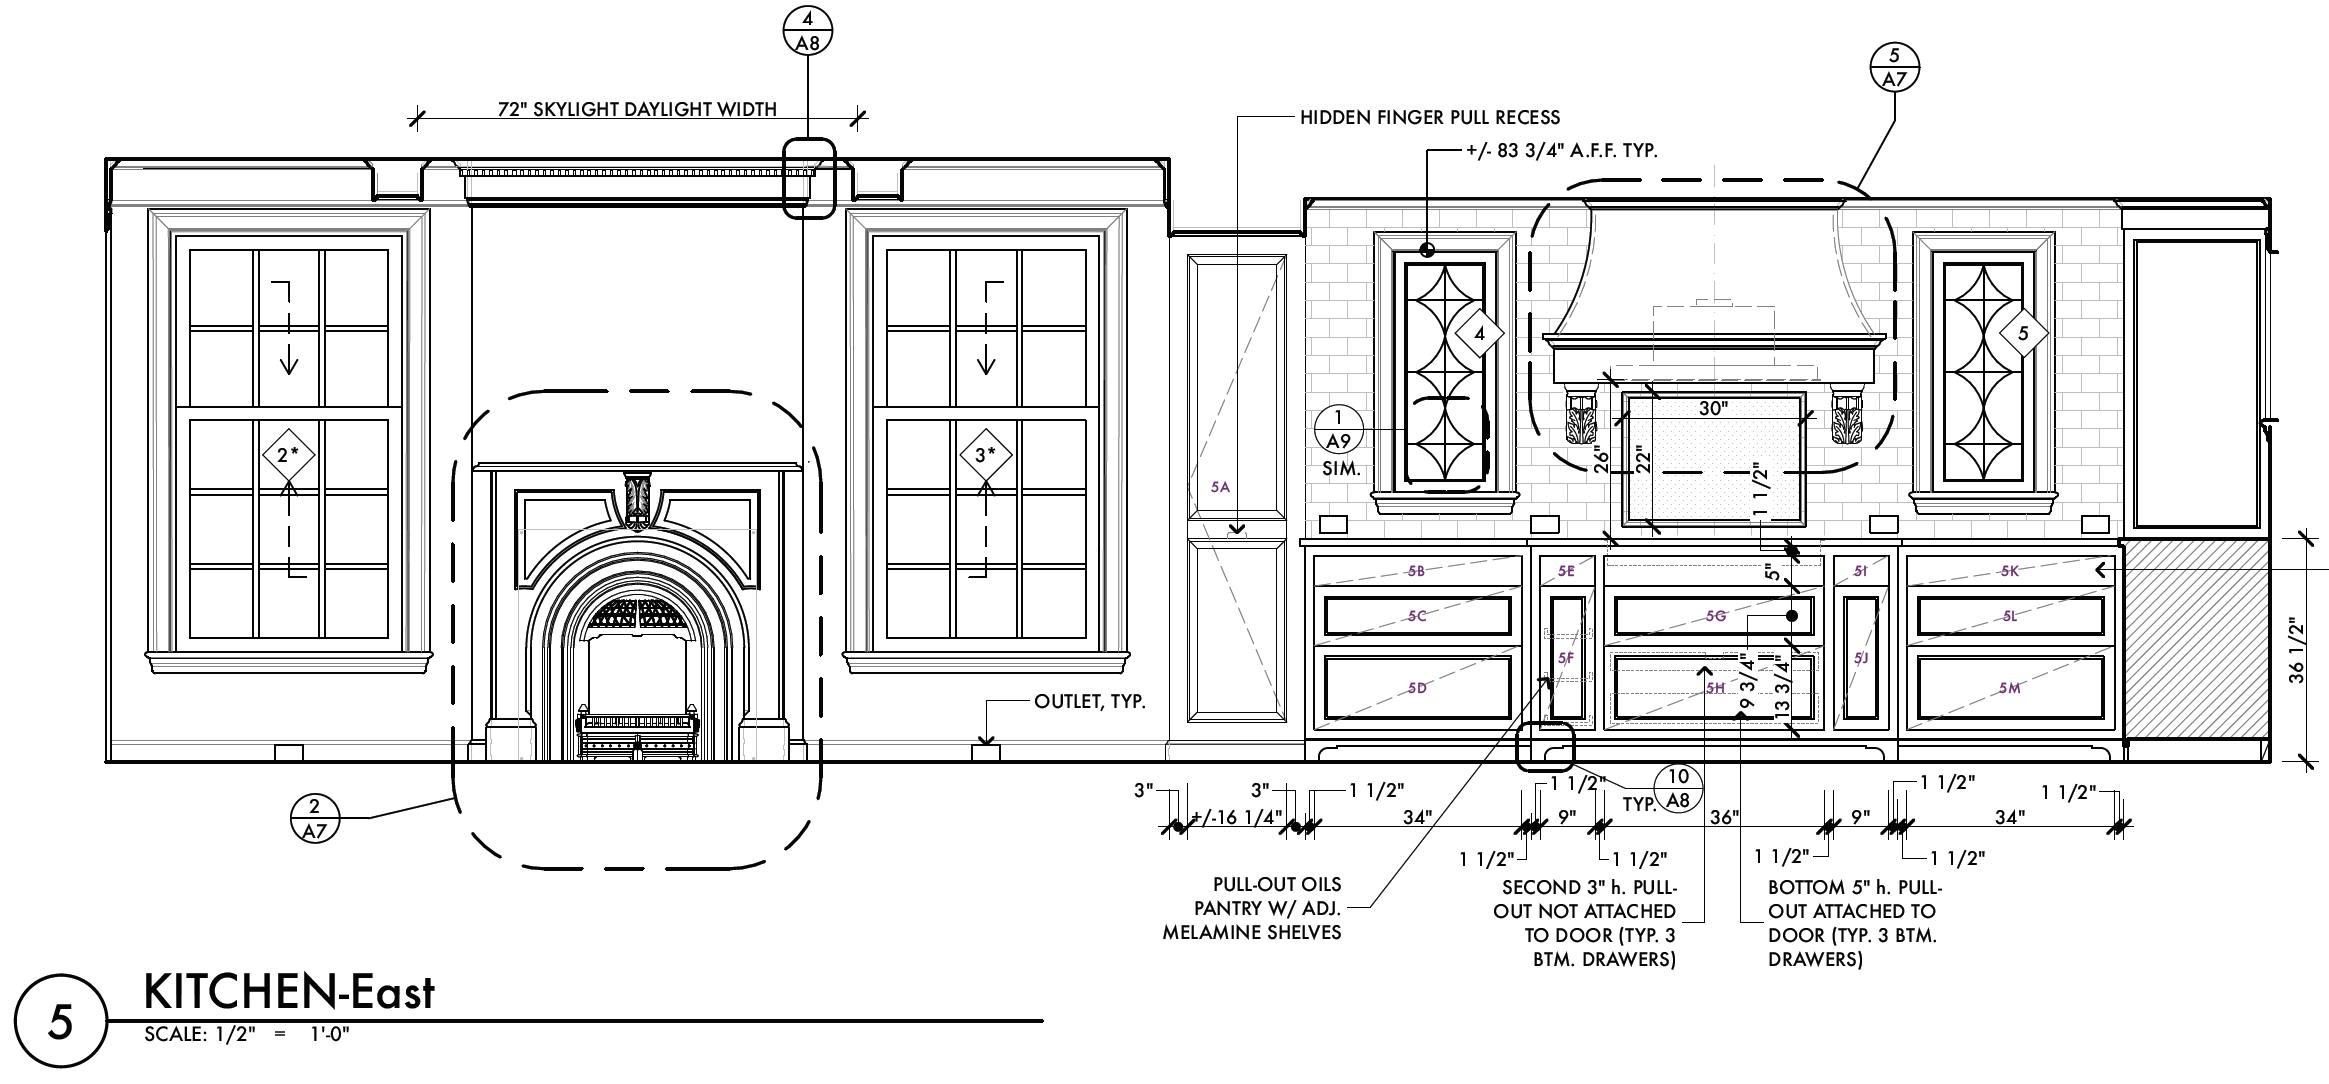 Stadium-district-kitchen-family-renovation-drawings-Tacoma.png